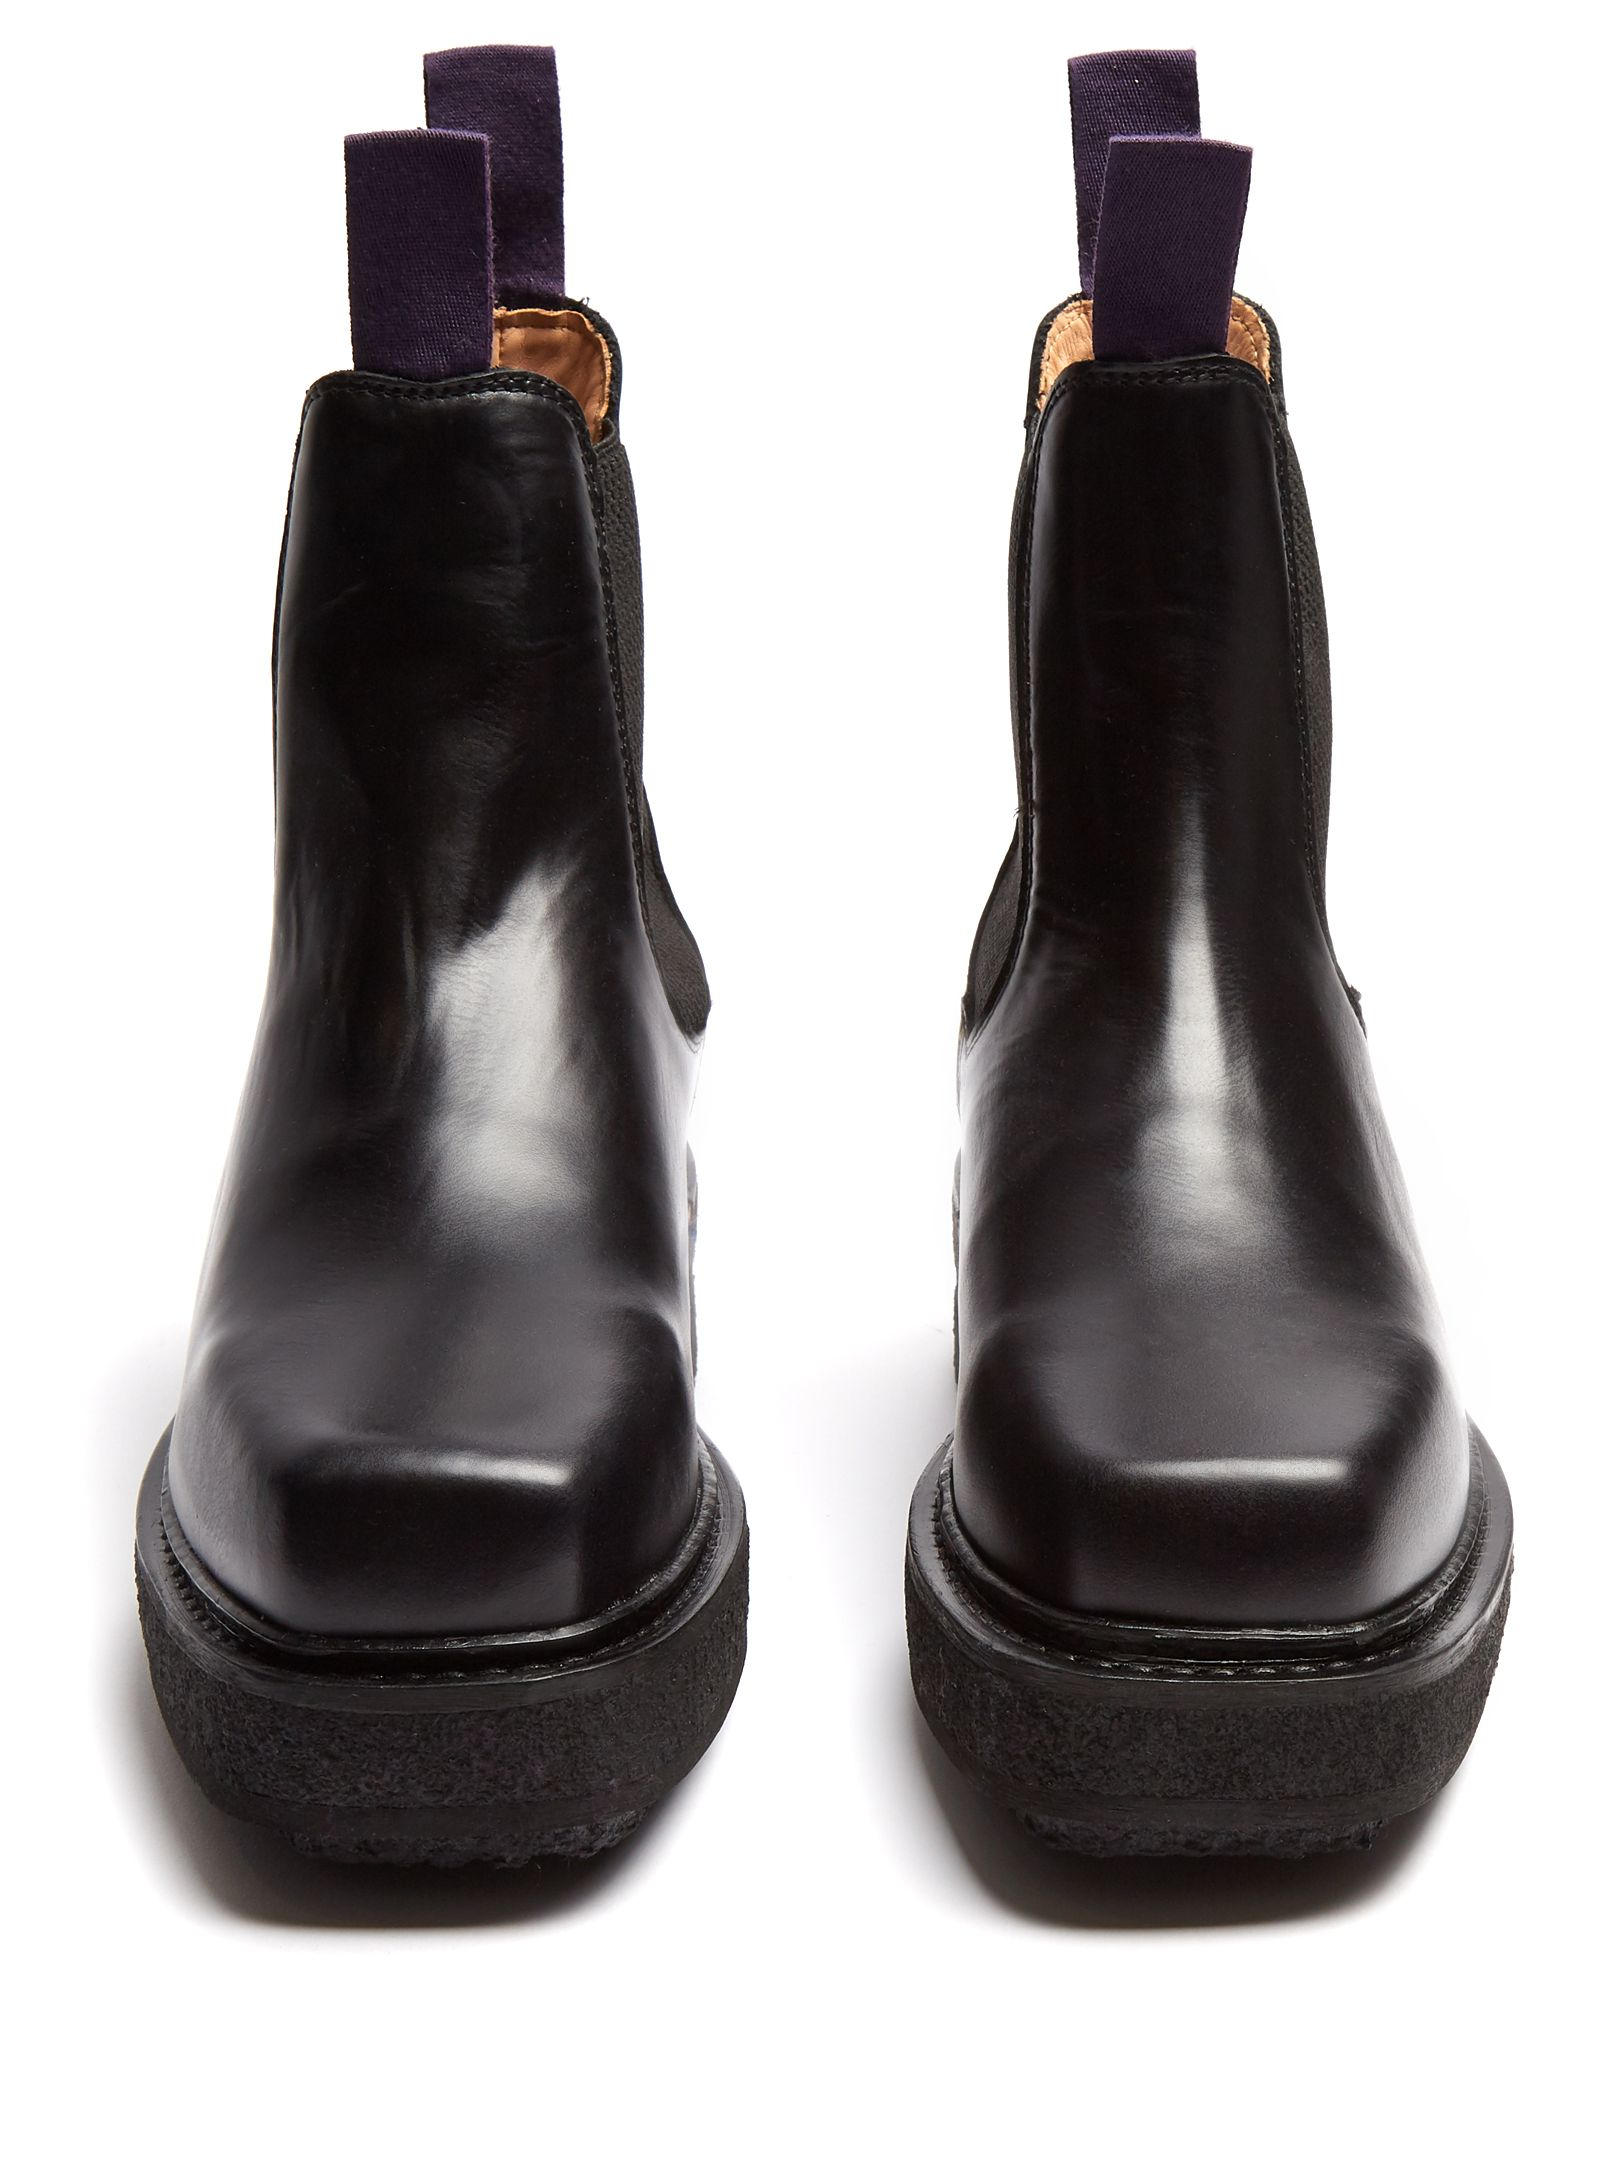 exceptional range of styles 2019 original large assortment Click here to buy Eytys Ortega leather chelsea boots at ...